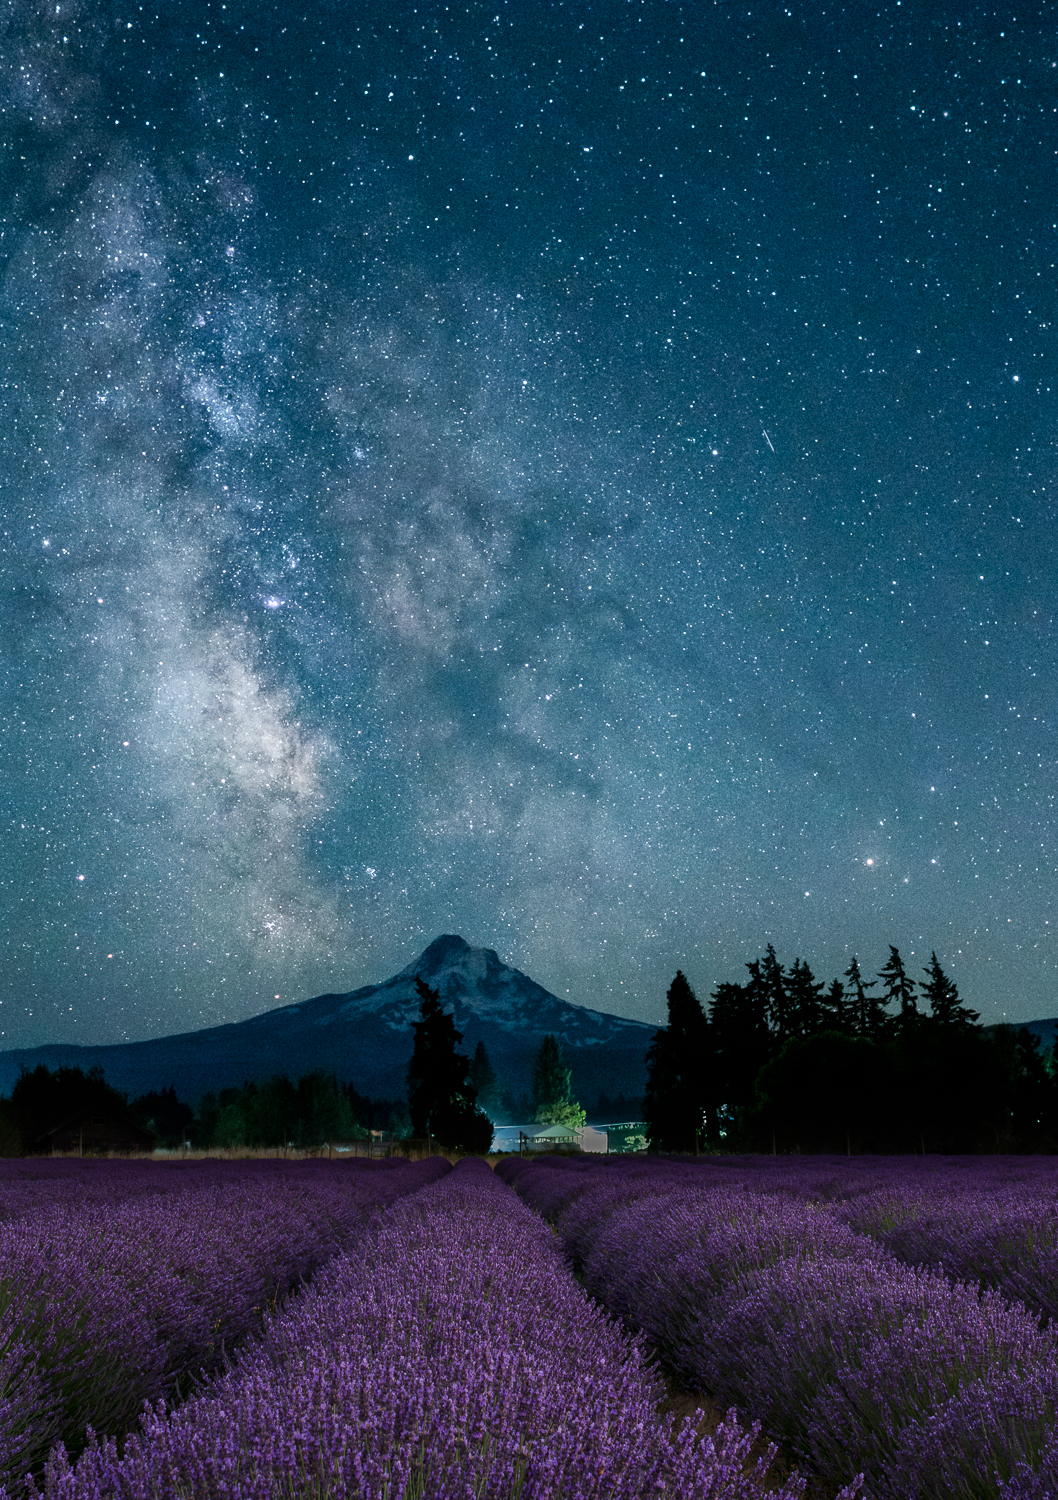 Milky Way over Mt Hood and Lavender Valley